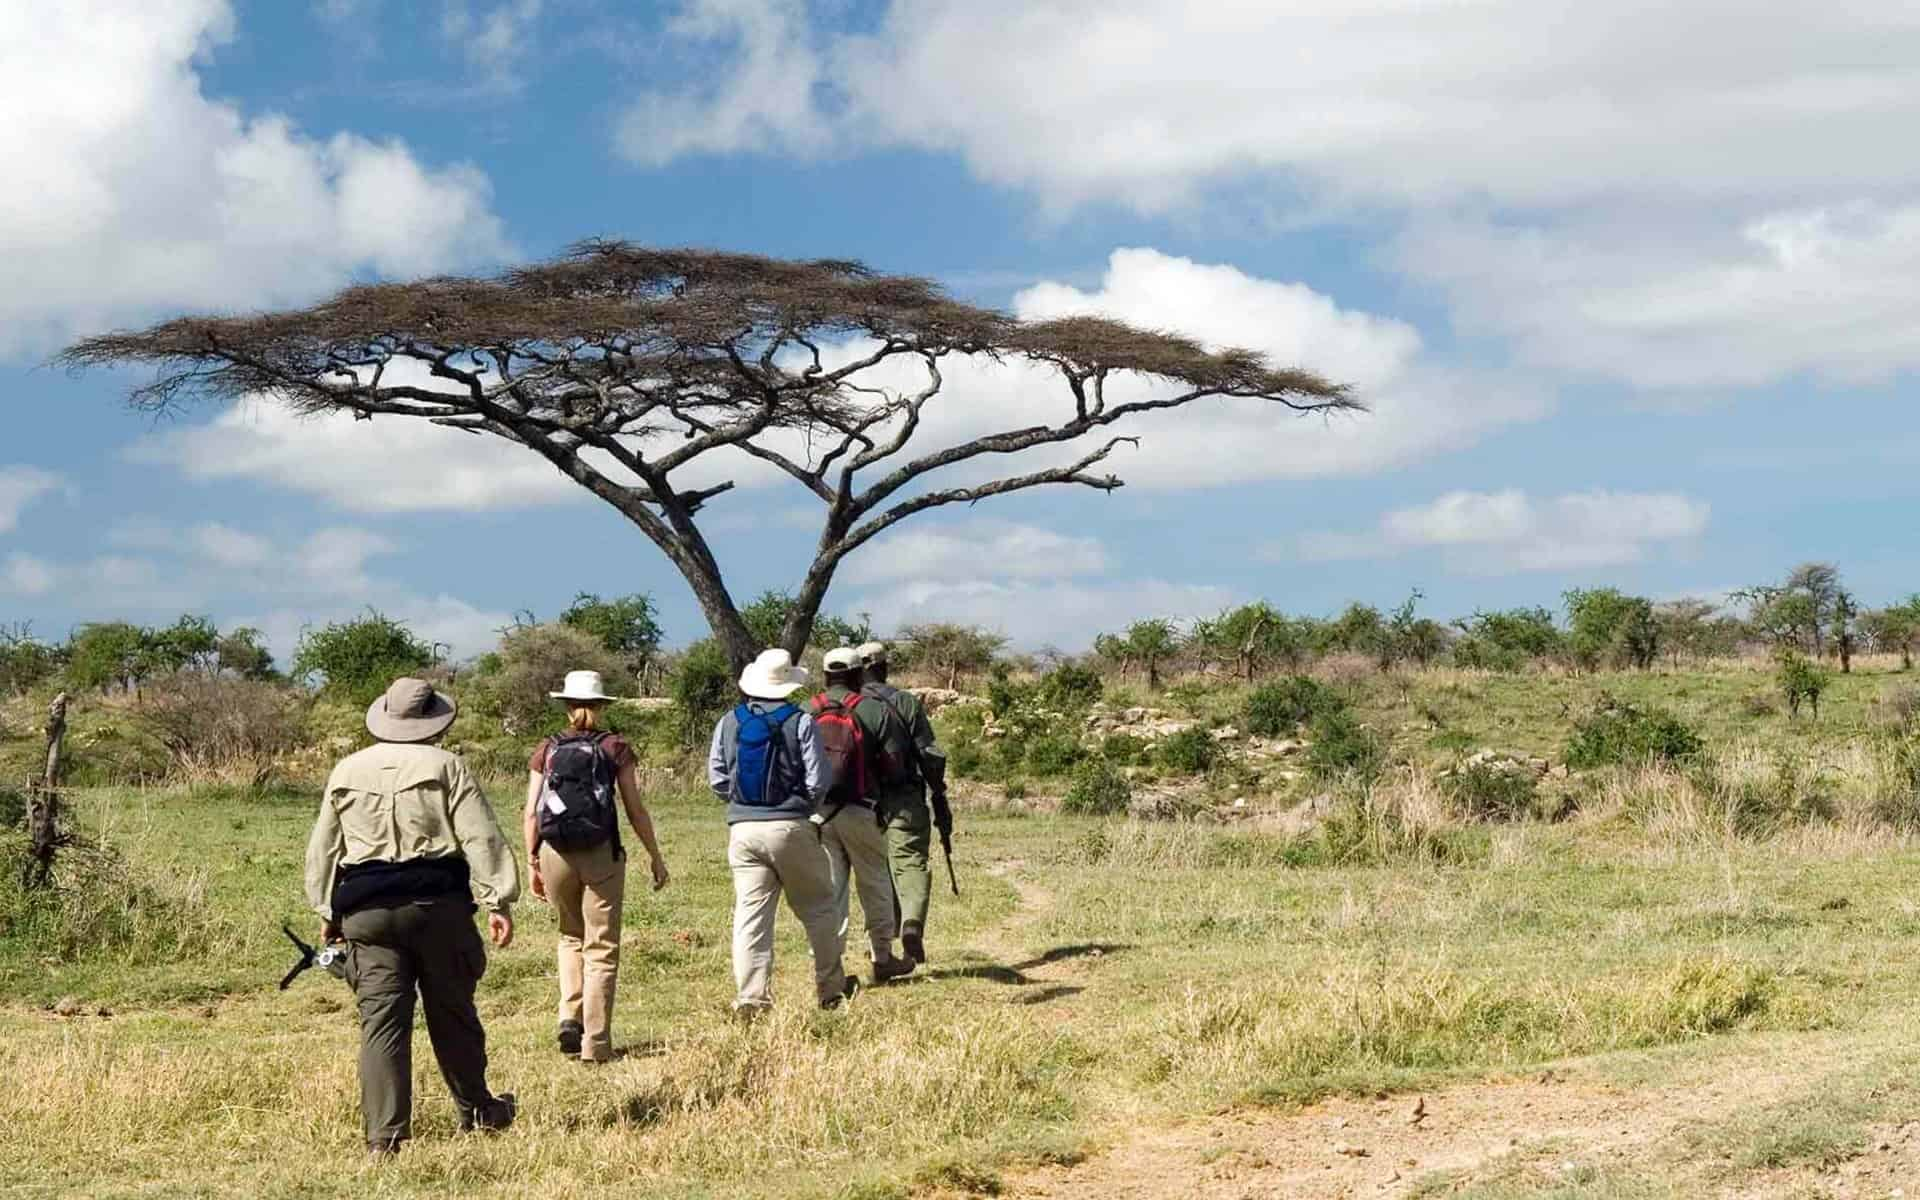 Walking Safari In East Africa Tanzania